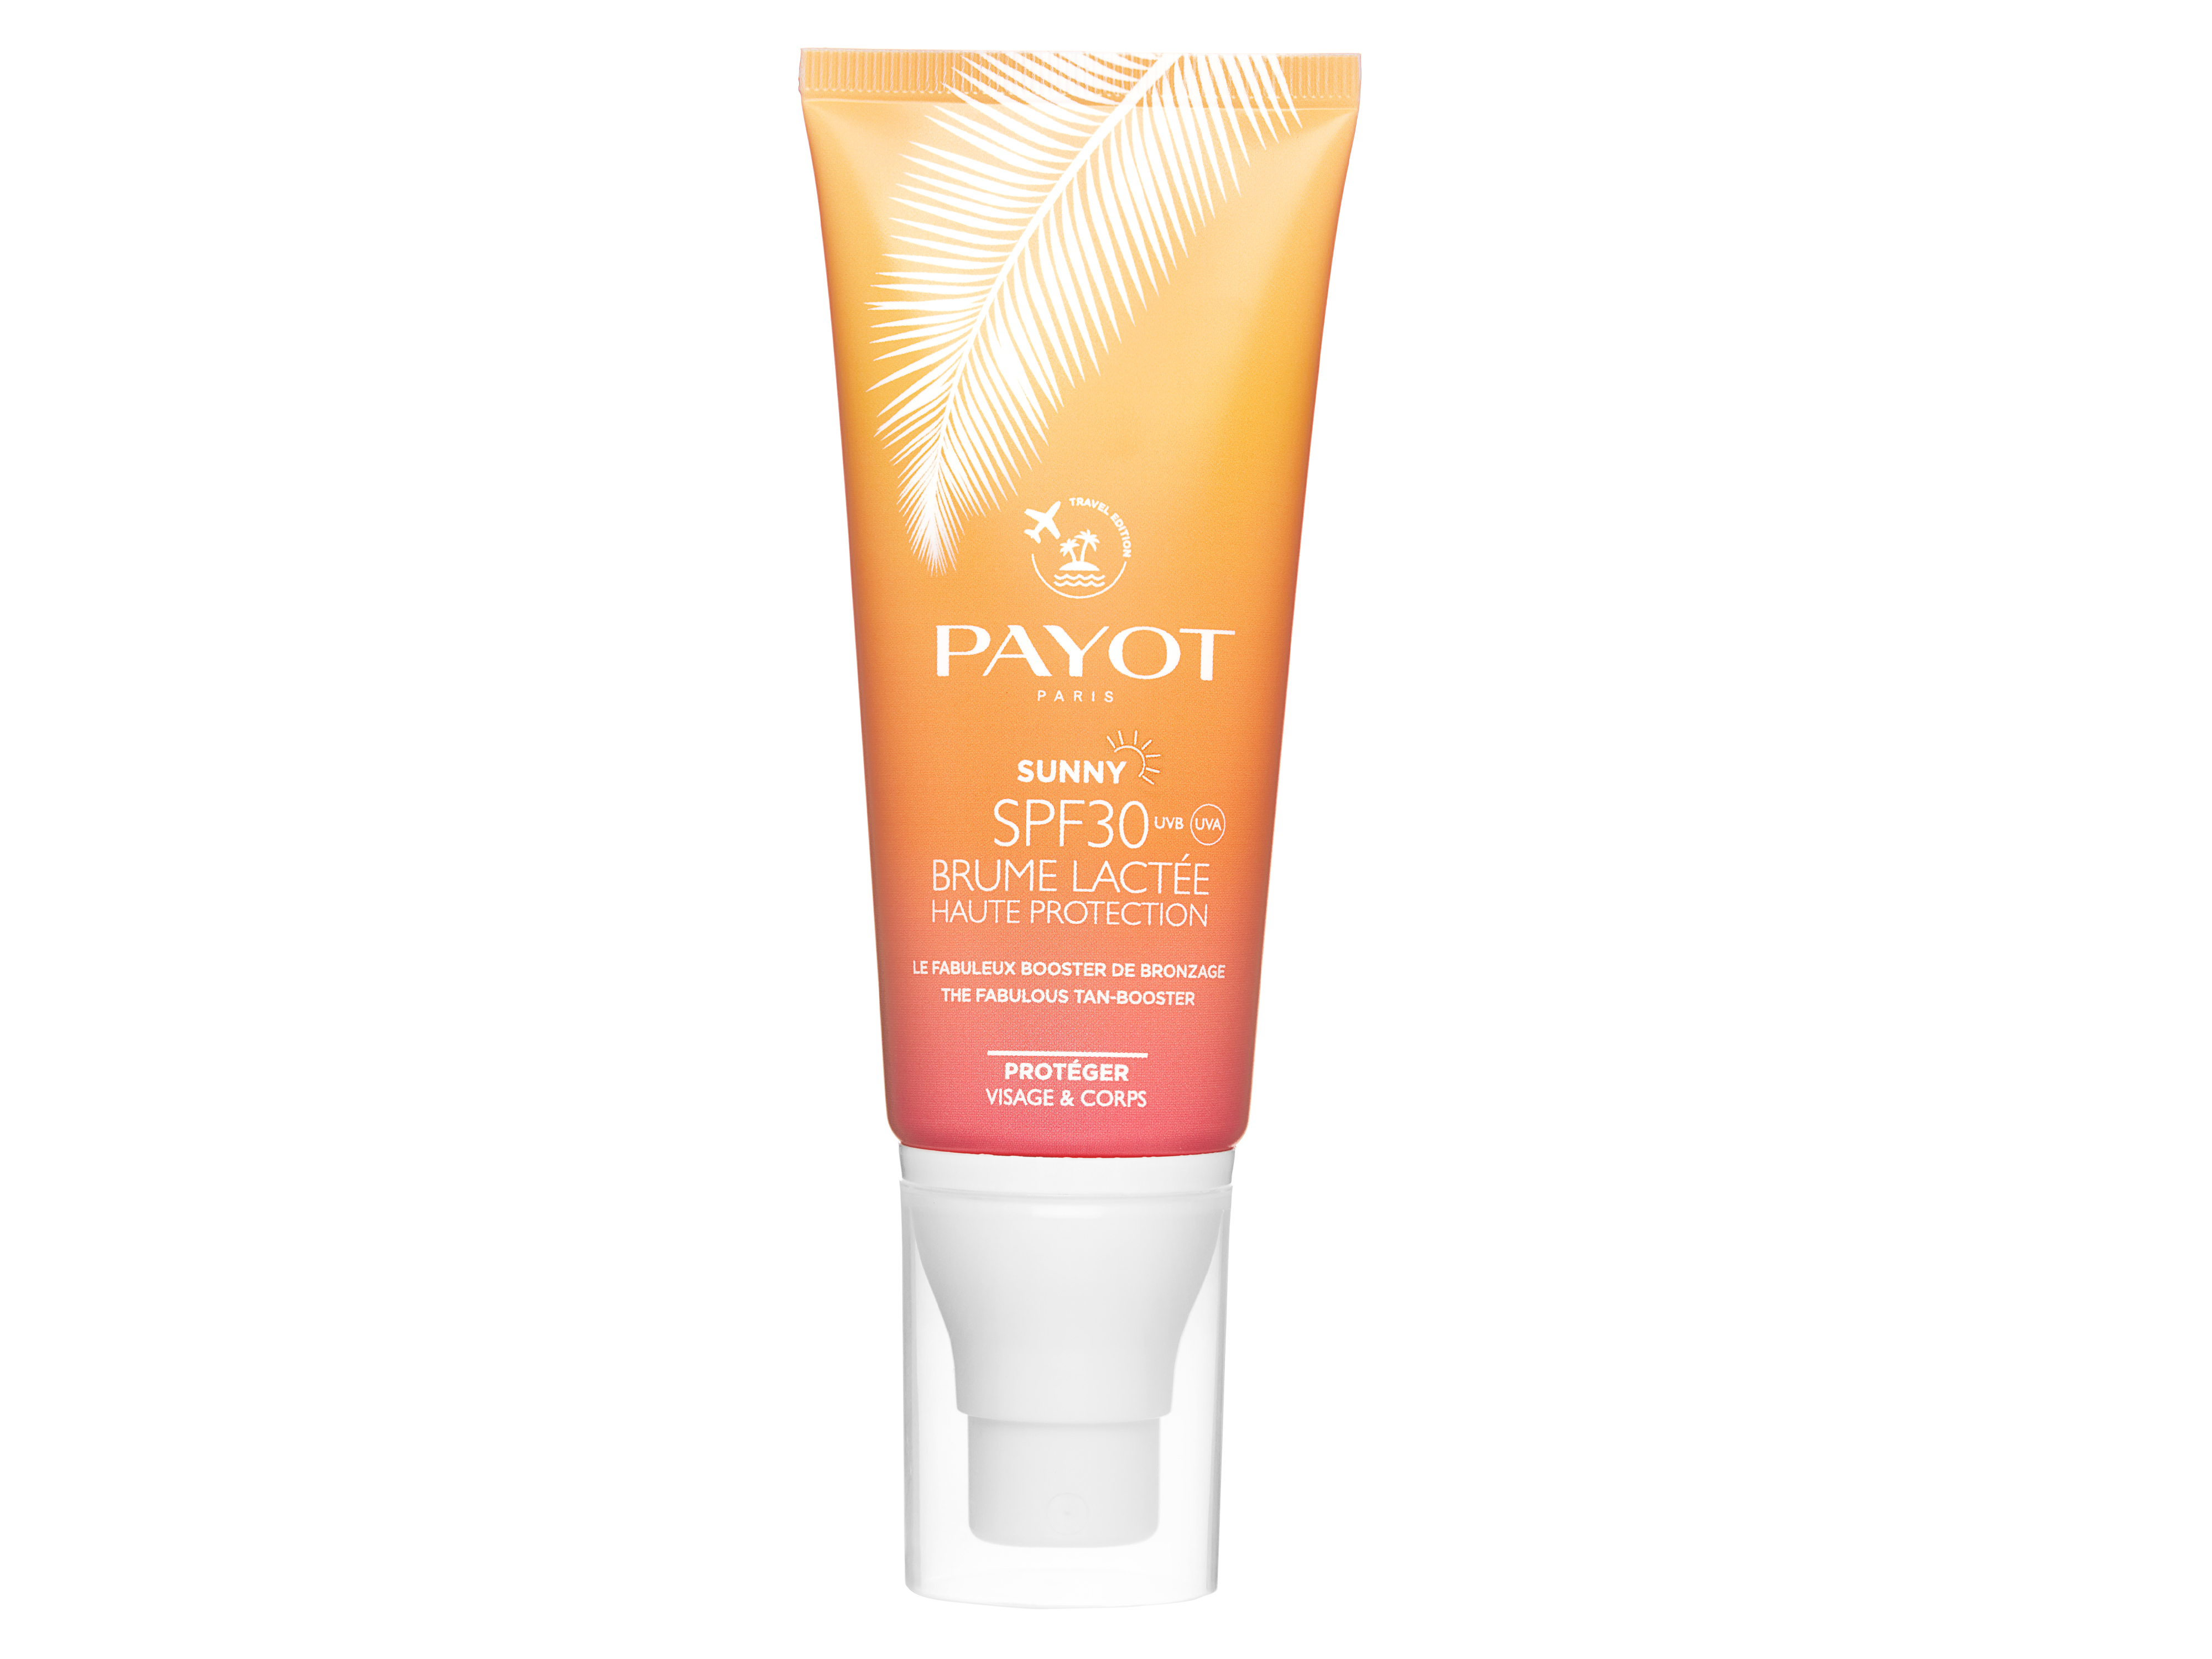 Payot Sunny Brume Lactée Face and Body, SPF 30, 100 ml